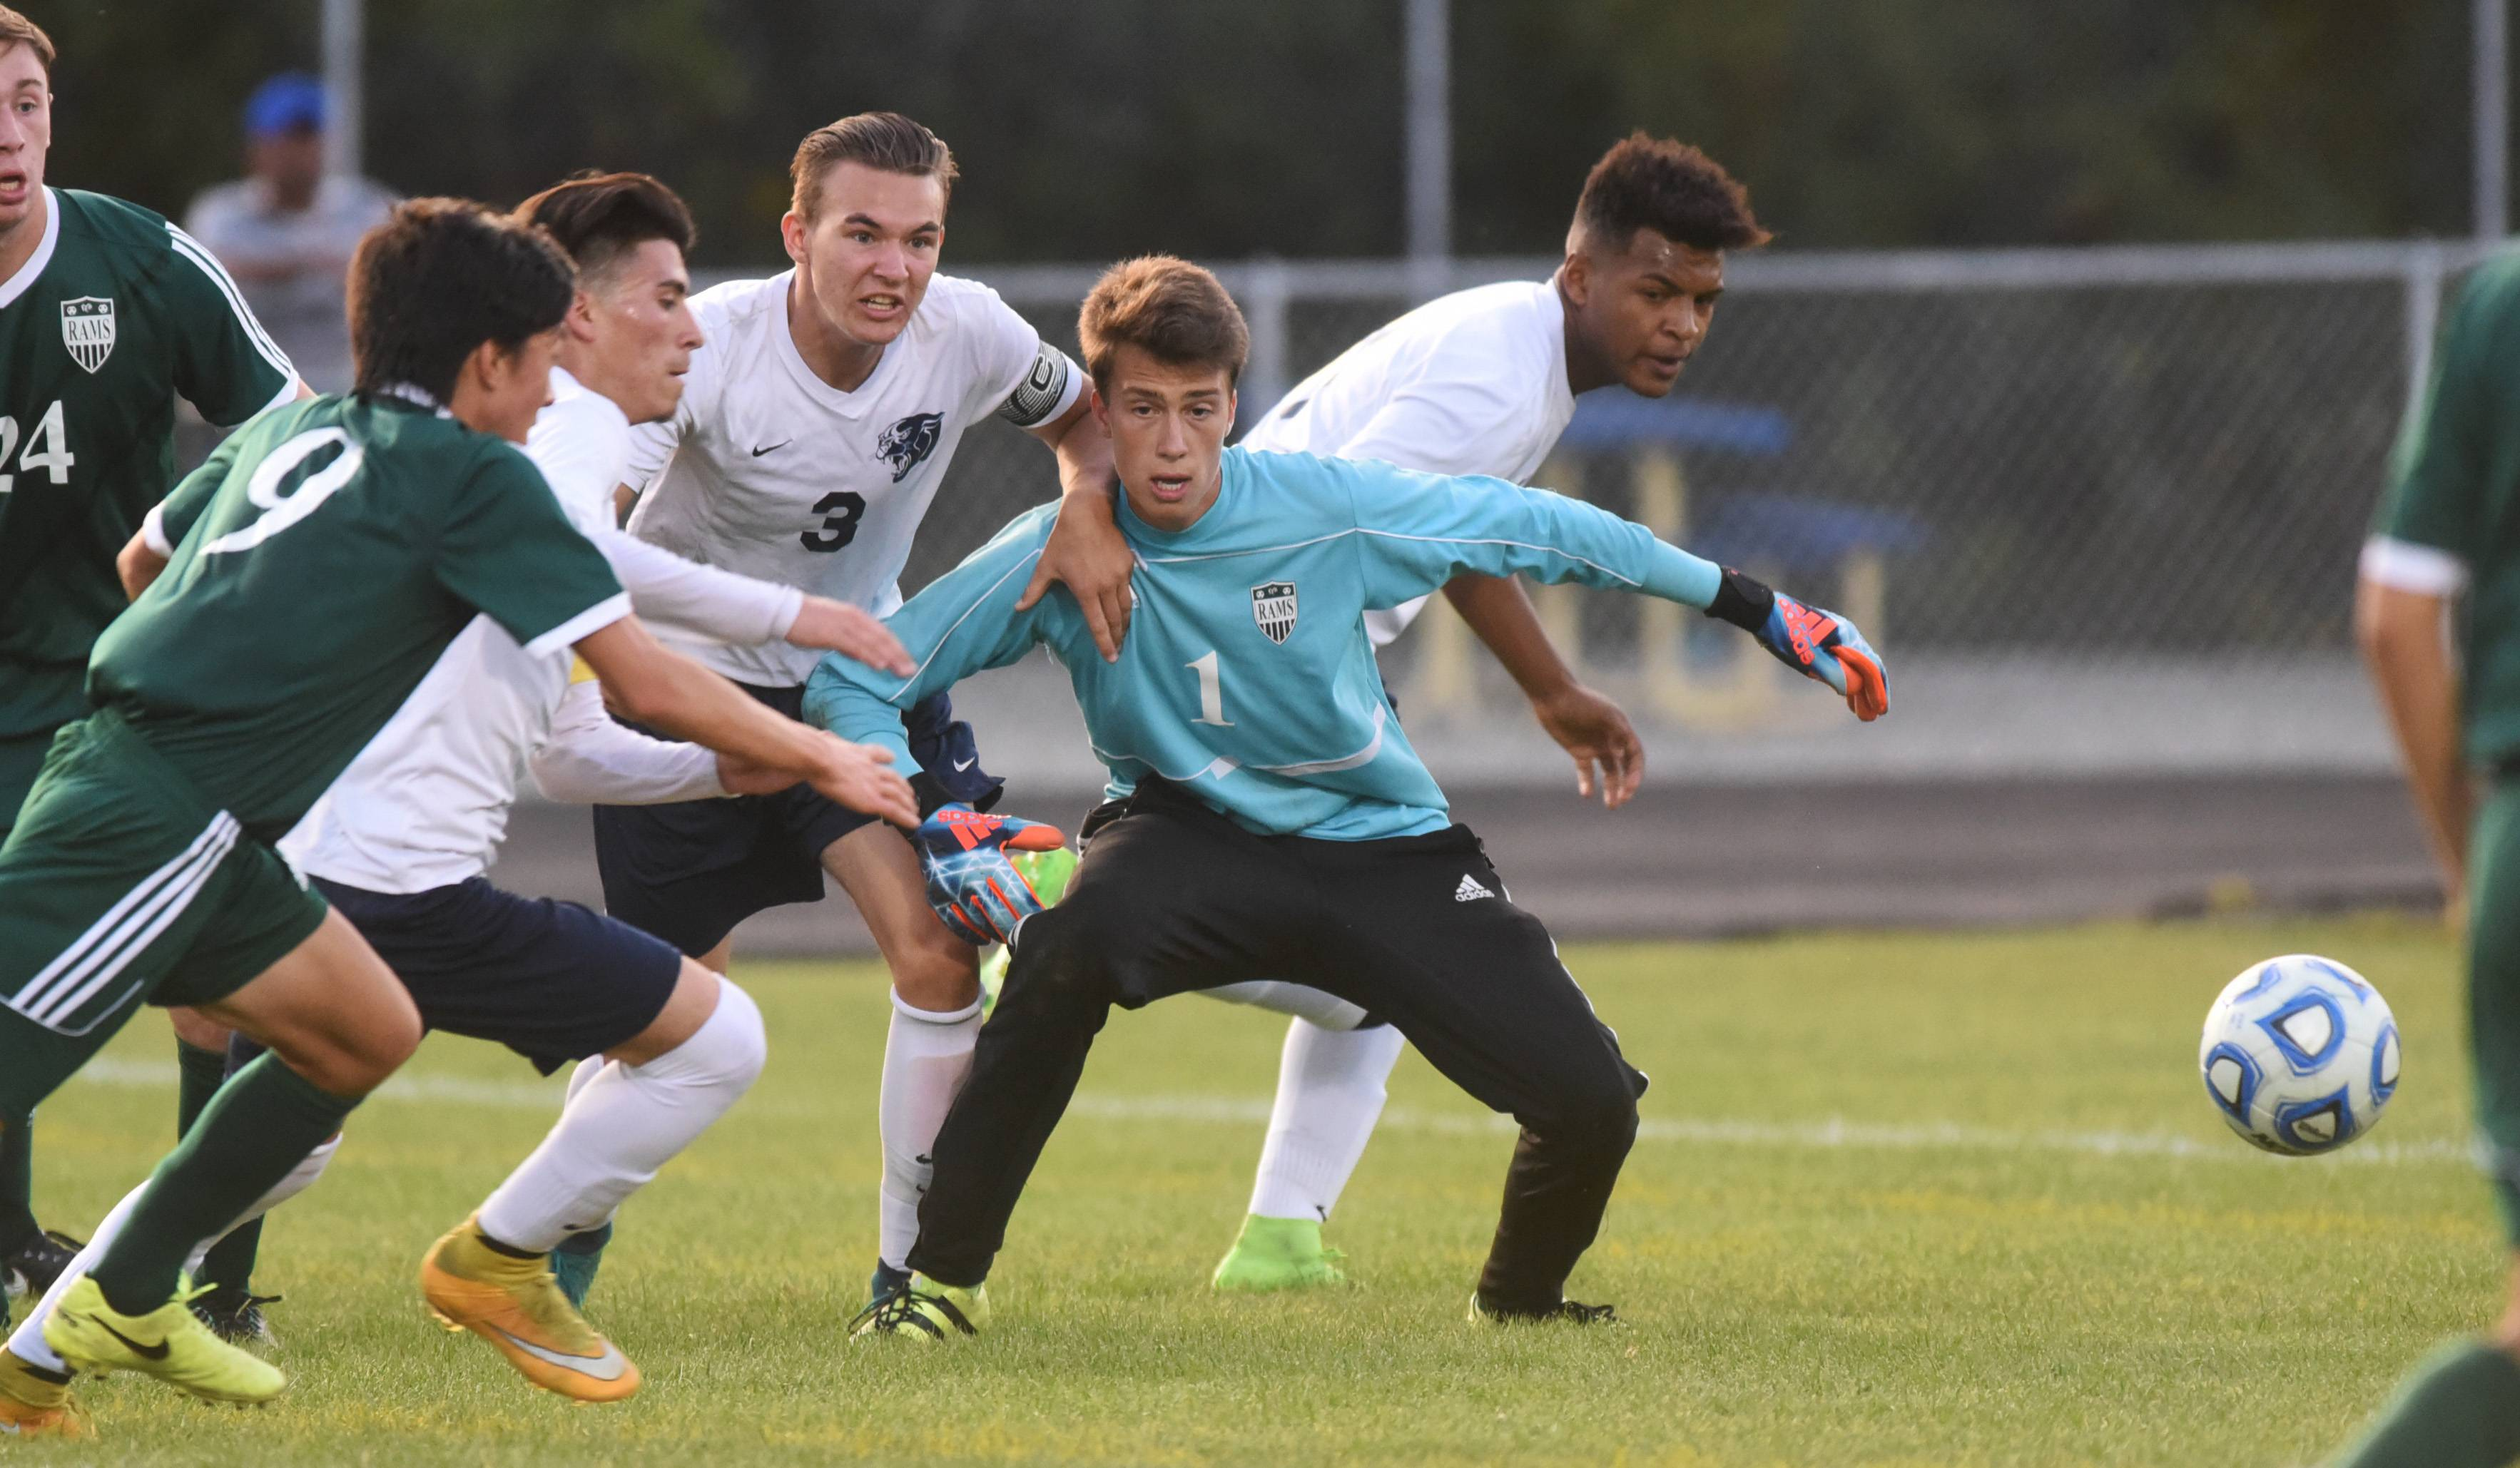 Grayslake Central goalkeeper Greg Madjarov (1) fights off Round Lake's Christofer Gomez, second from left, Jakub Bialkowski (3) and Maqiis Hayward, right, during Tuesday's soccer match in Round Lake.